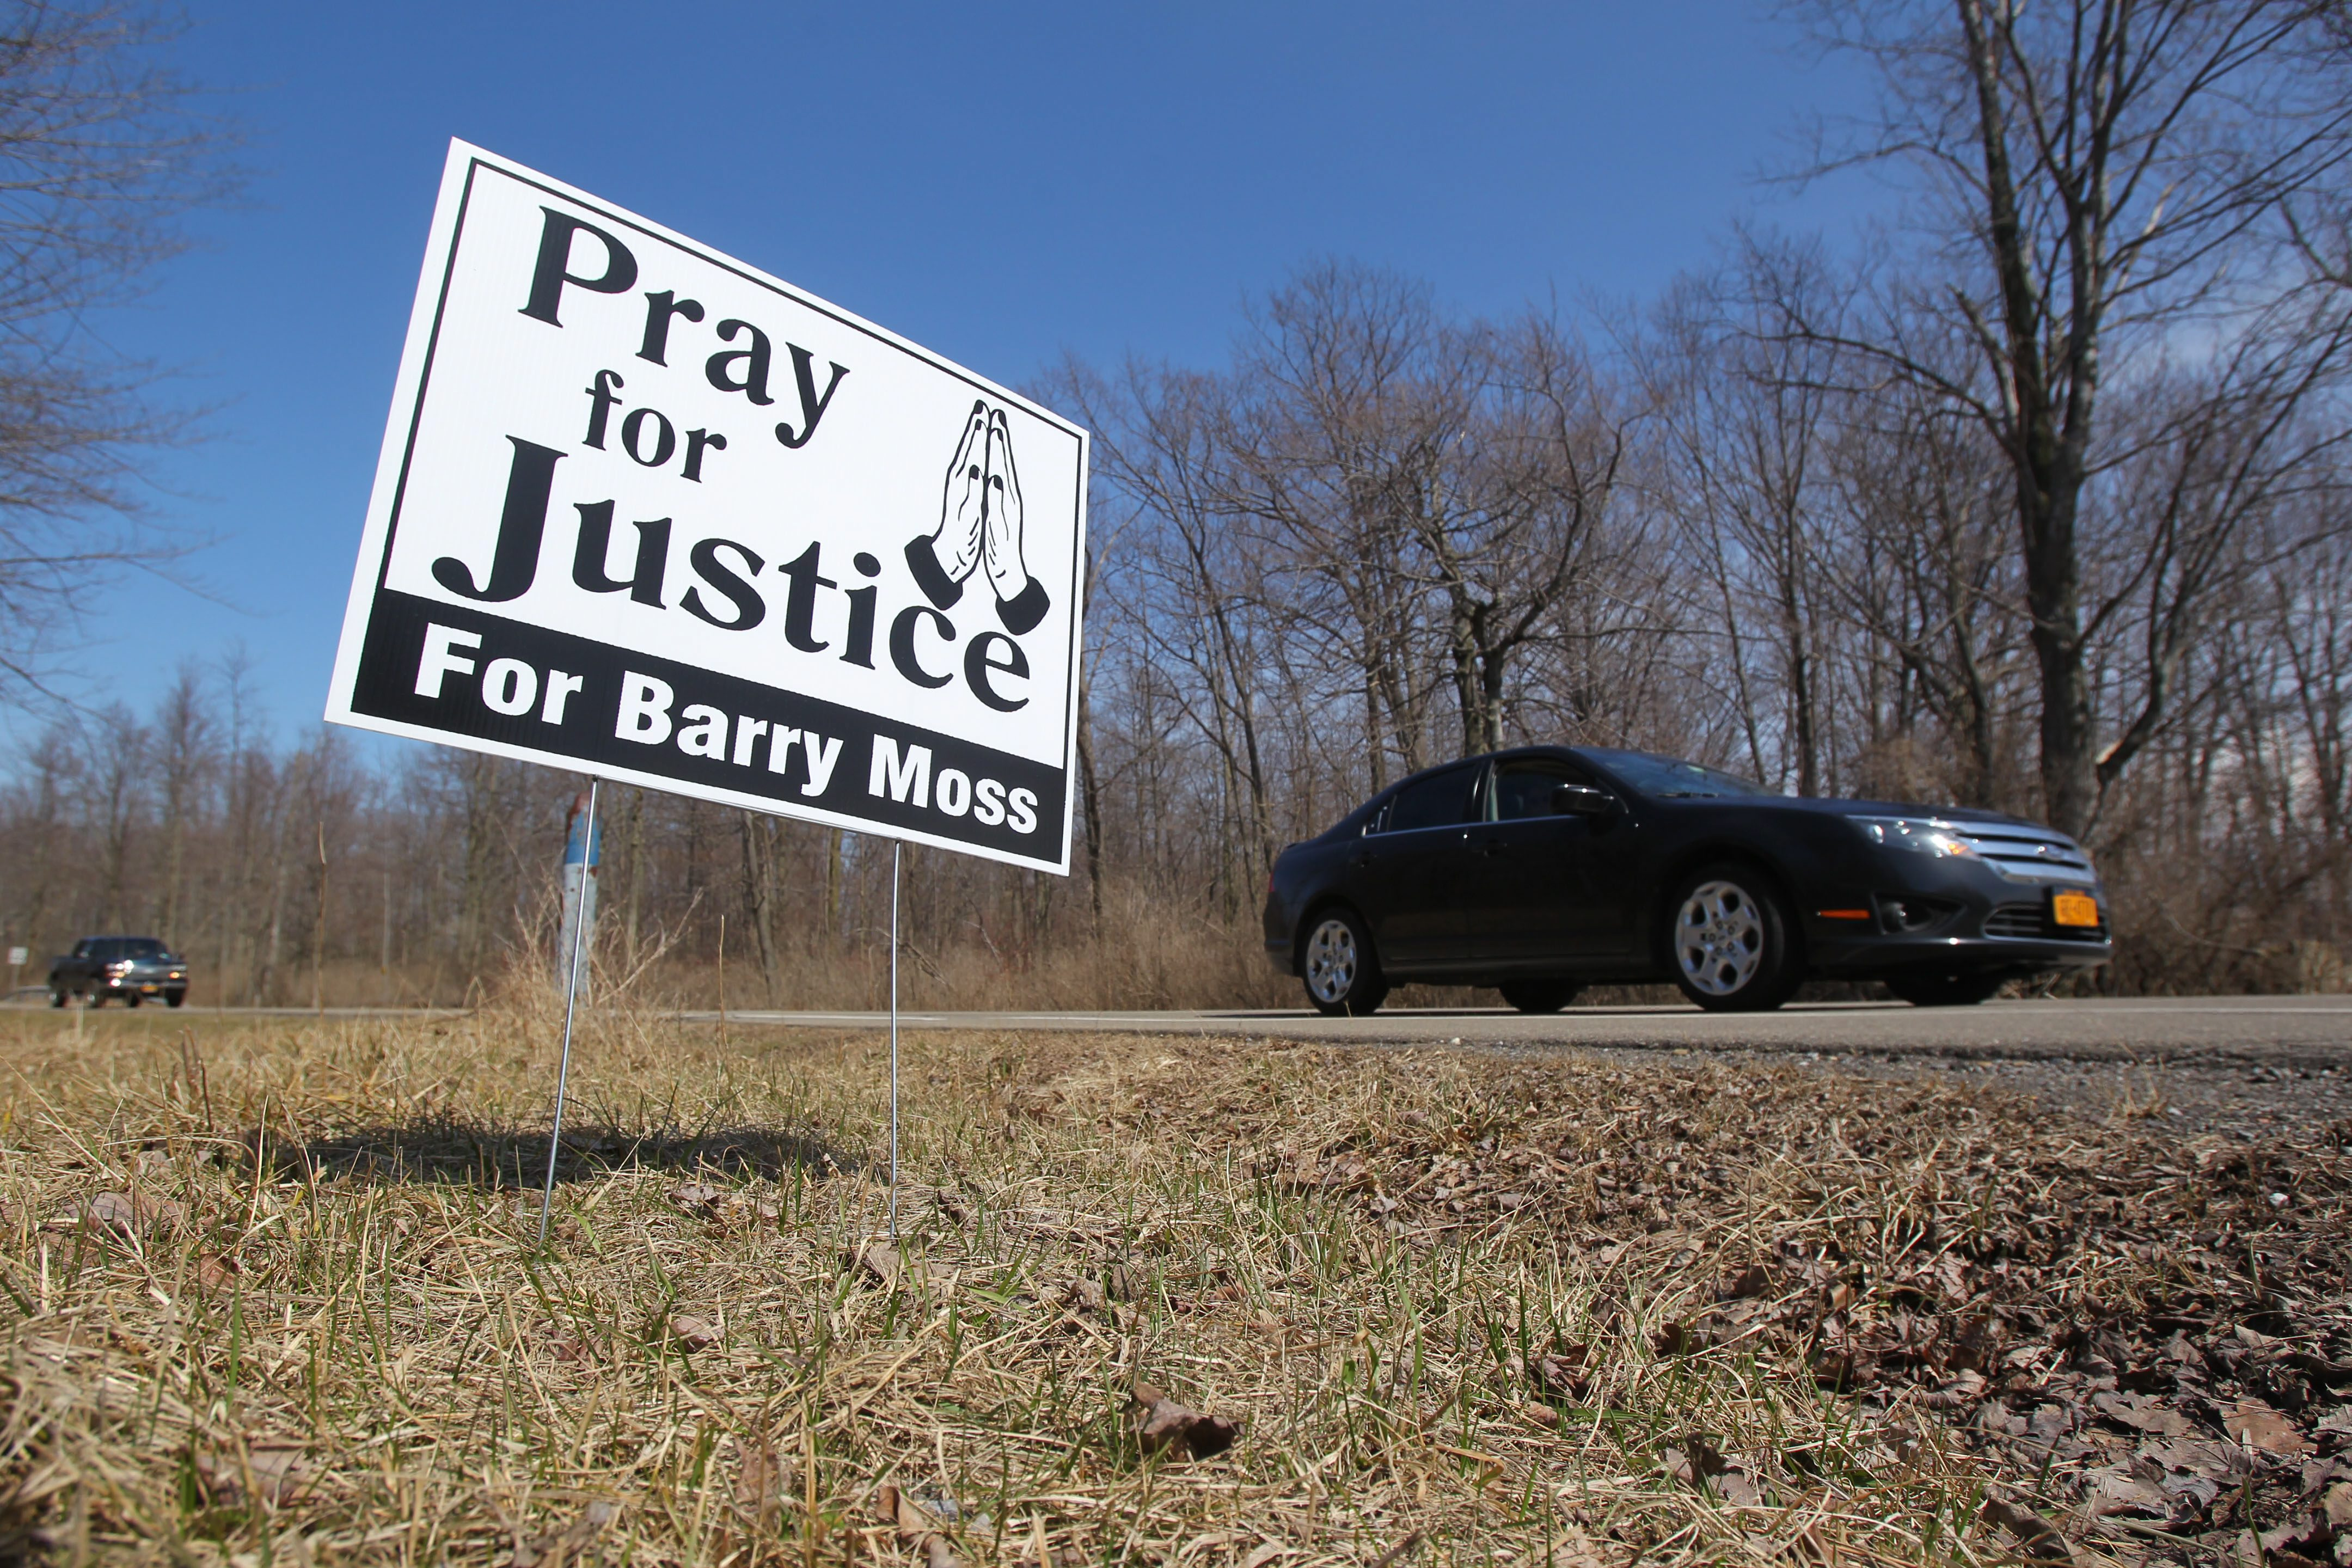 Signs for Barry Moss line the streets in the town of Evans Friday, April 11, 2014. (Mark Mulville/Buffalo News)